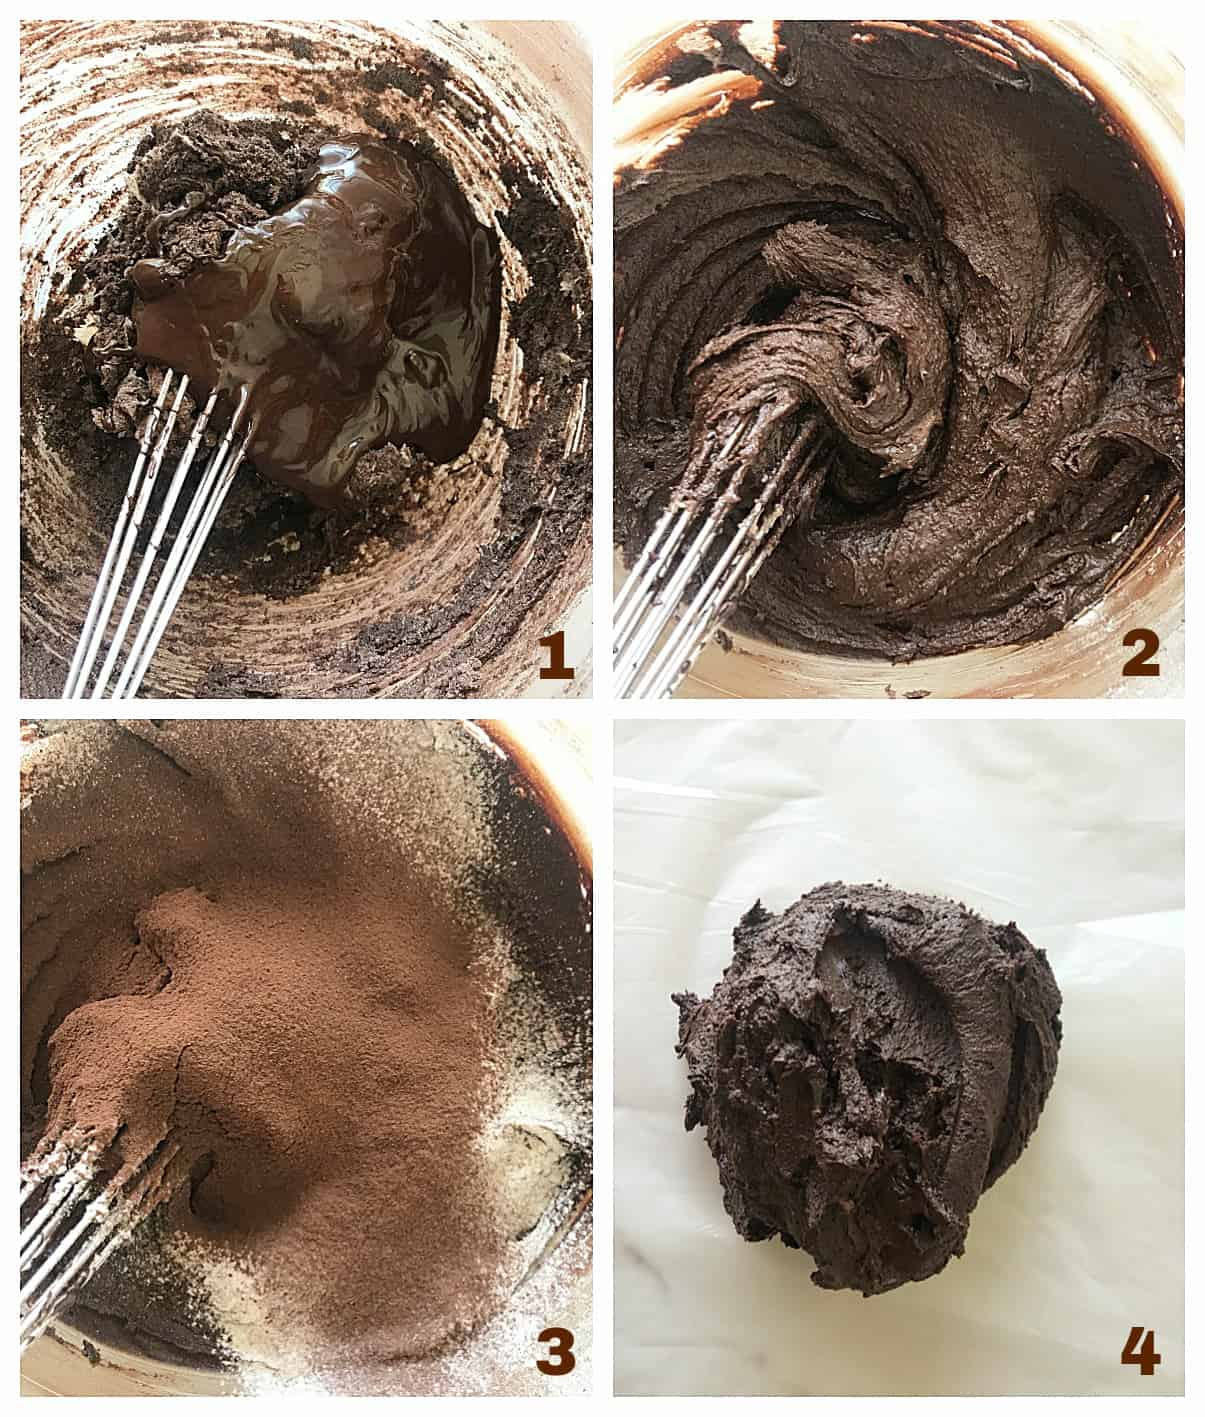 Image collage of 4 process steps making chocolate cookies, glass bowl and metal whisk